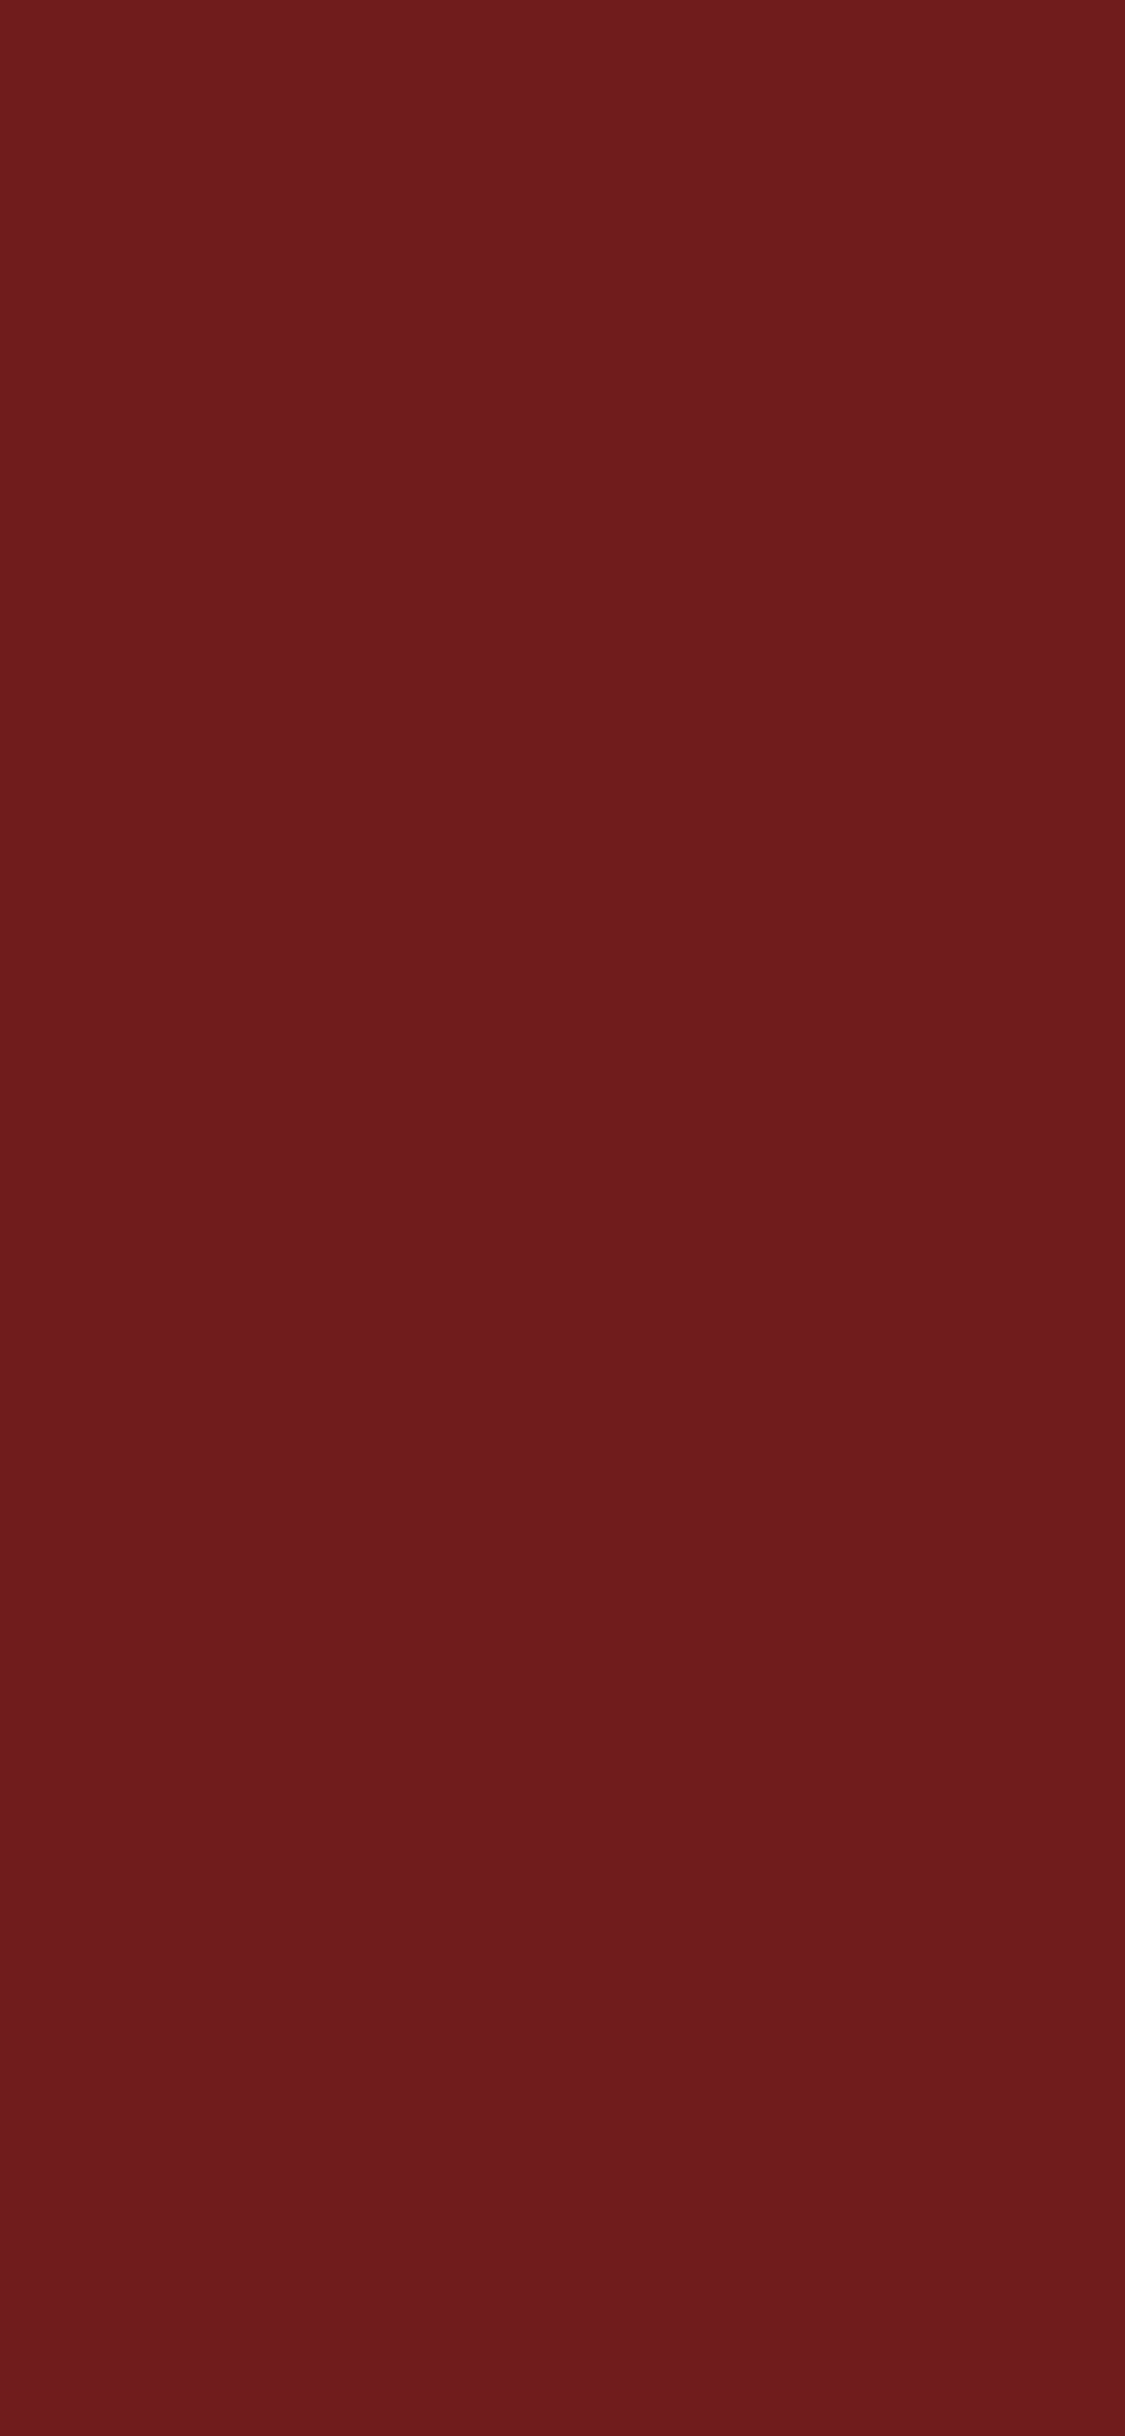 1125x2436 Prune Solid Color Background